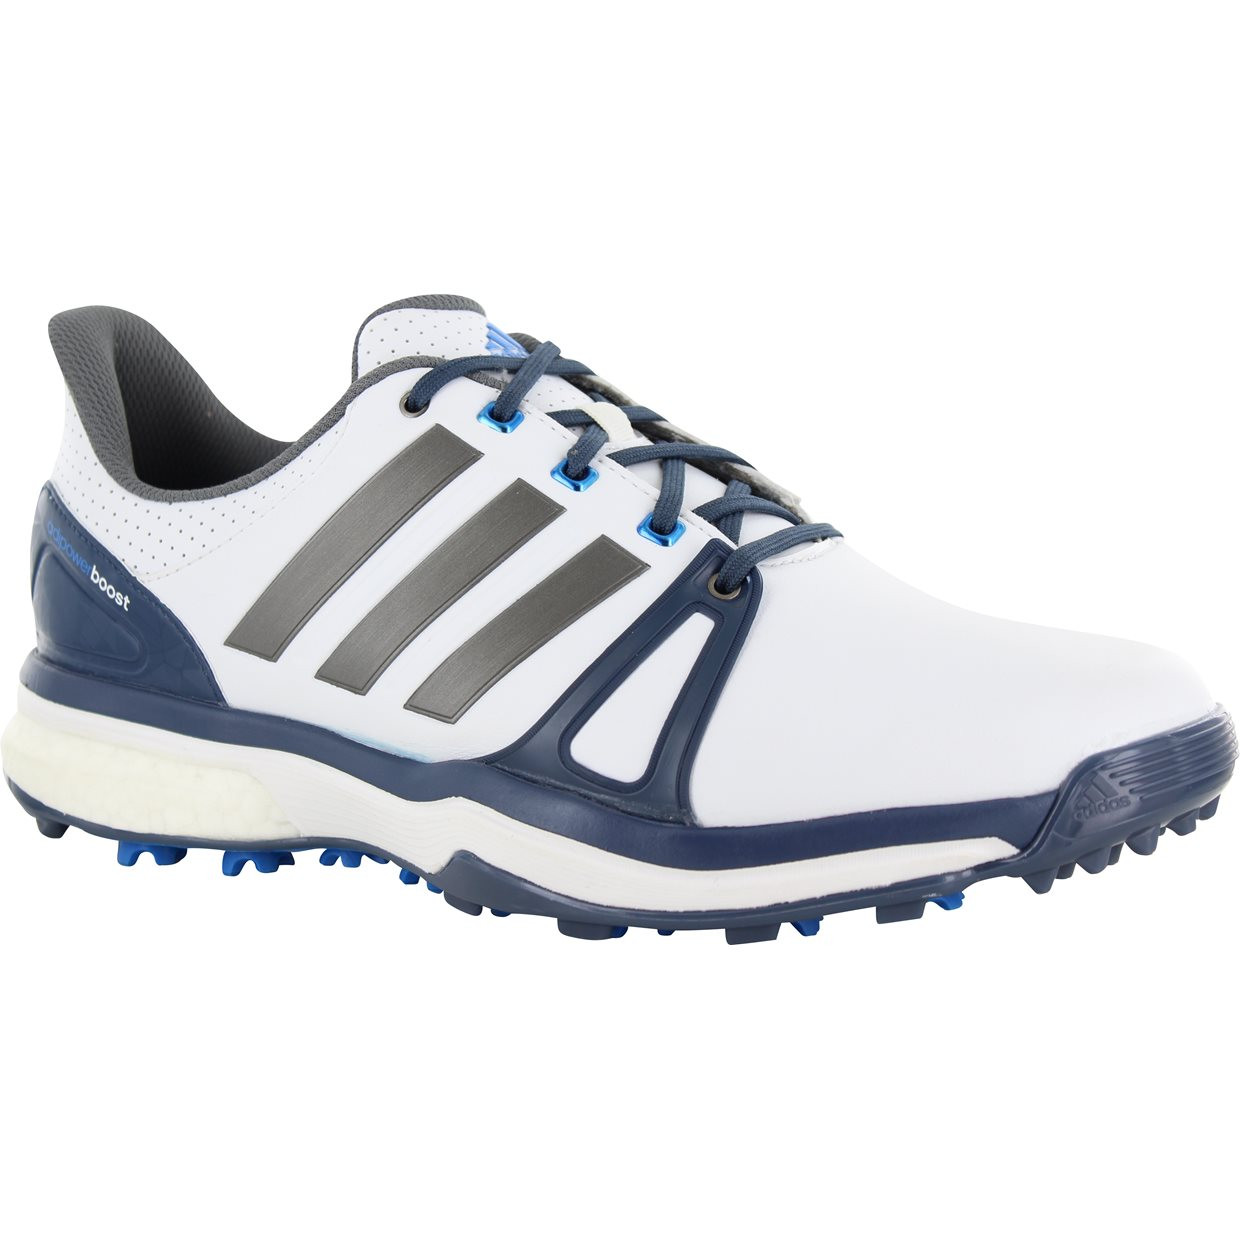 Adipower Boost Golf Shoes